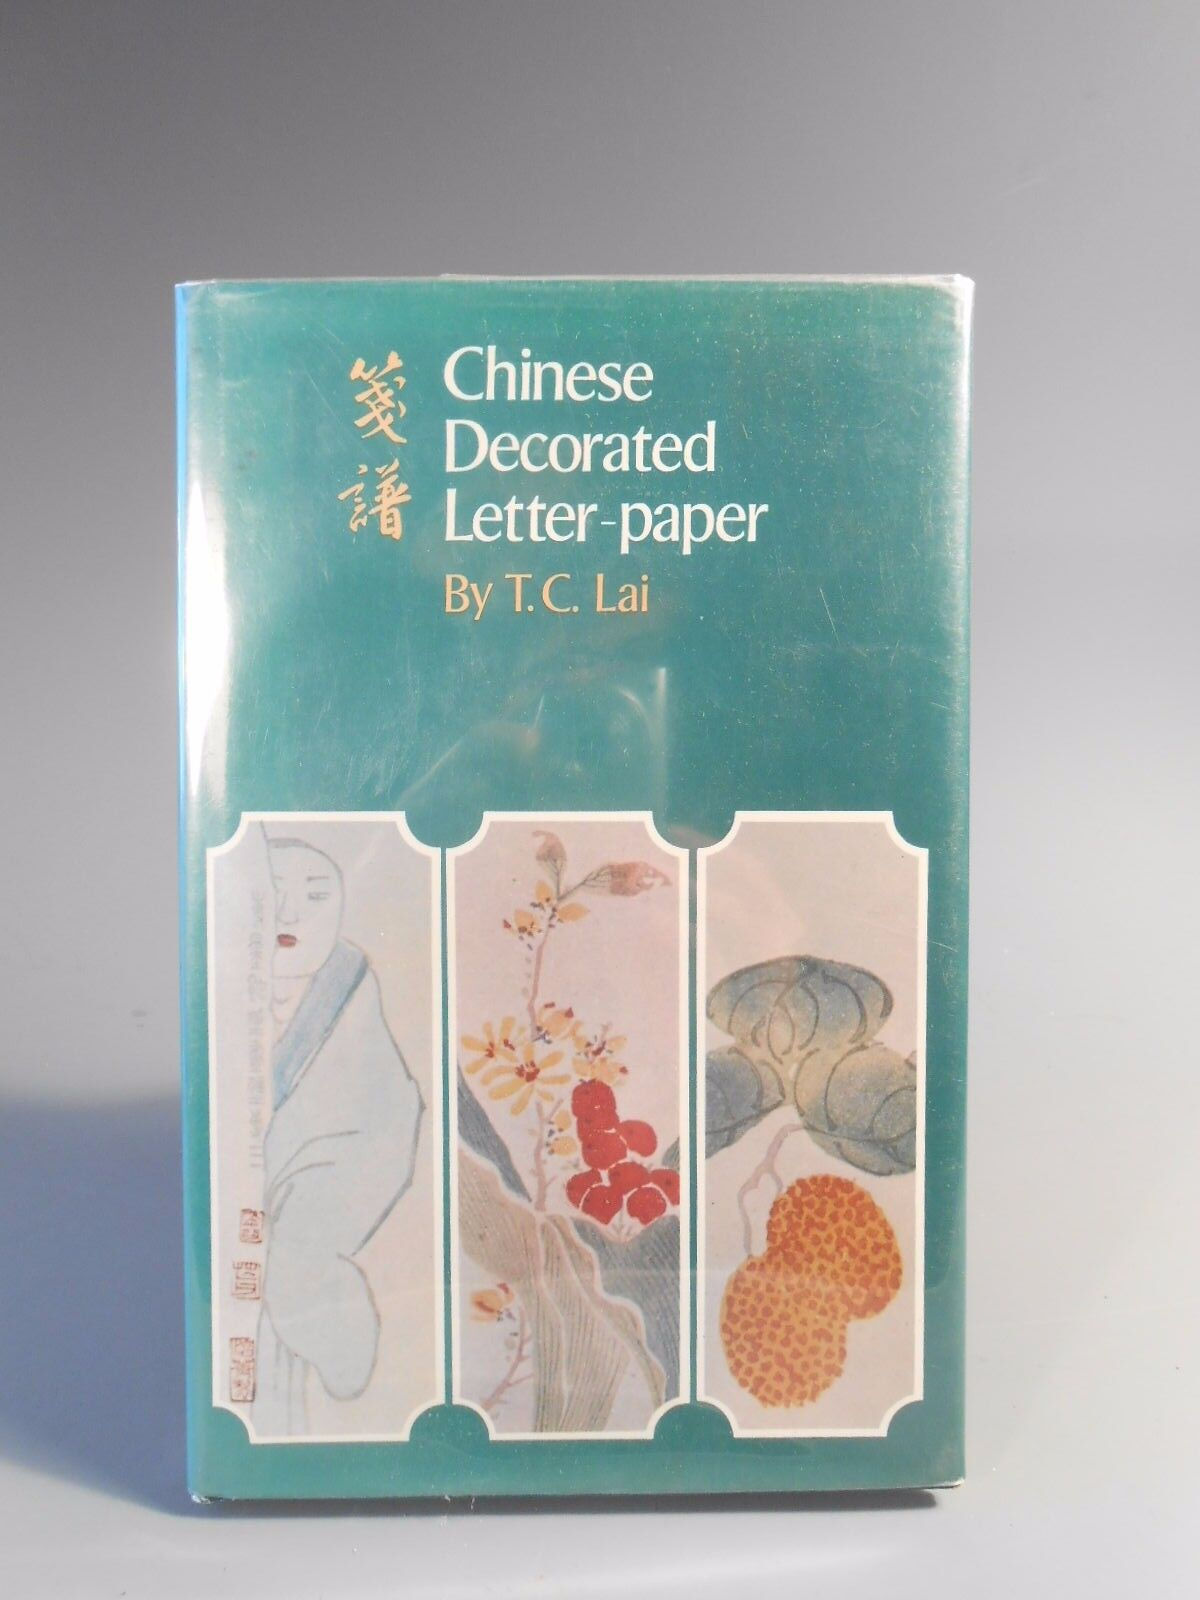 Chinese Decorated Letter-paper By T.C. Lai Hardcover Edition 138 ...